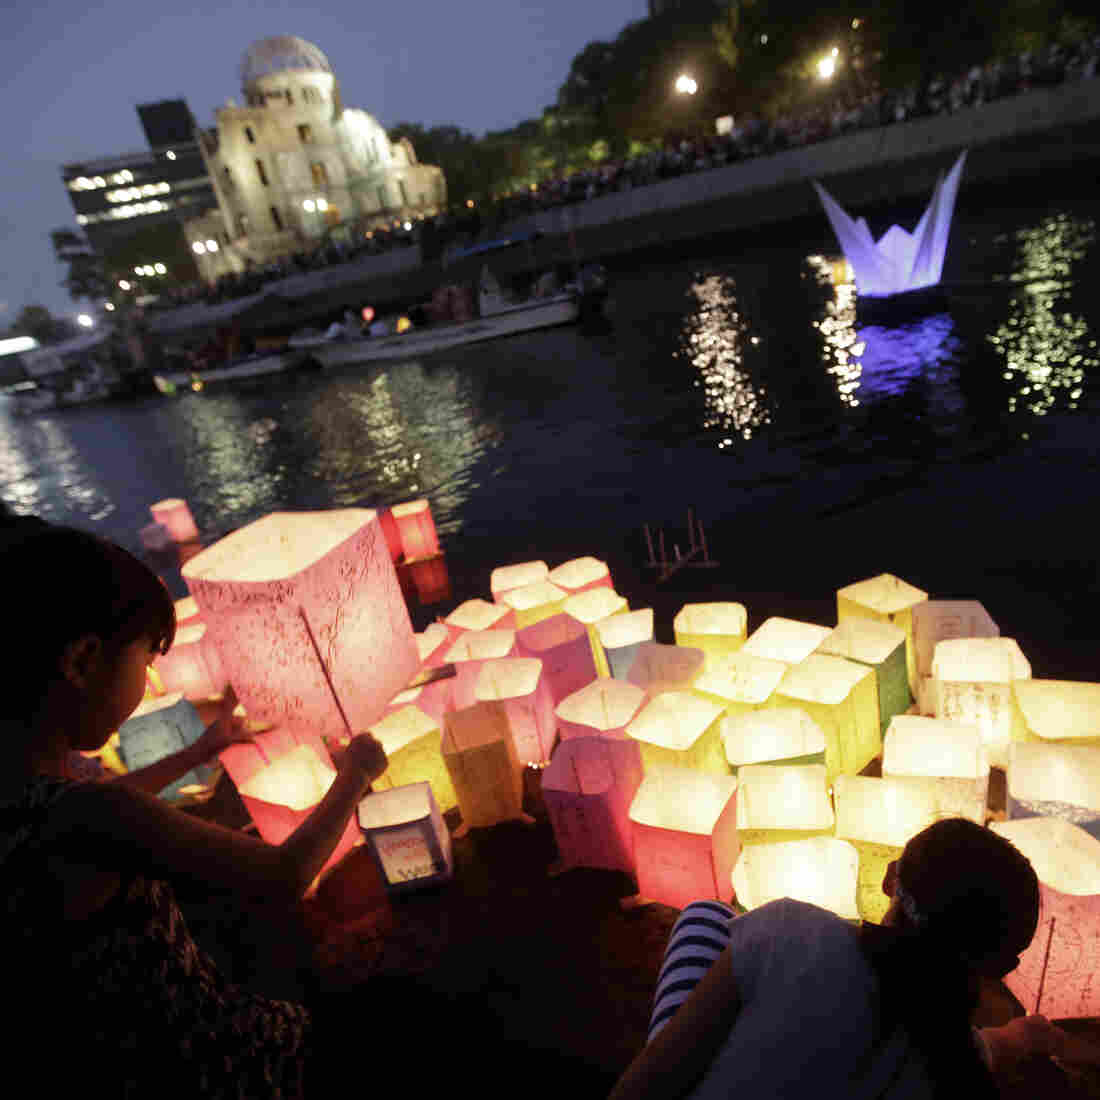 70 Years After Atomic Bombs, Japan Still Struggles With Wartime Past